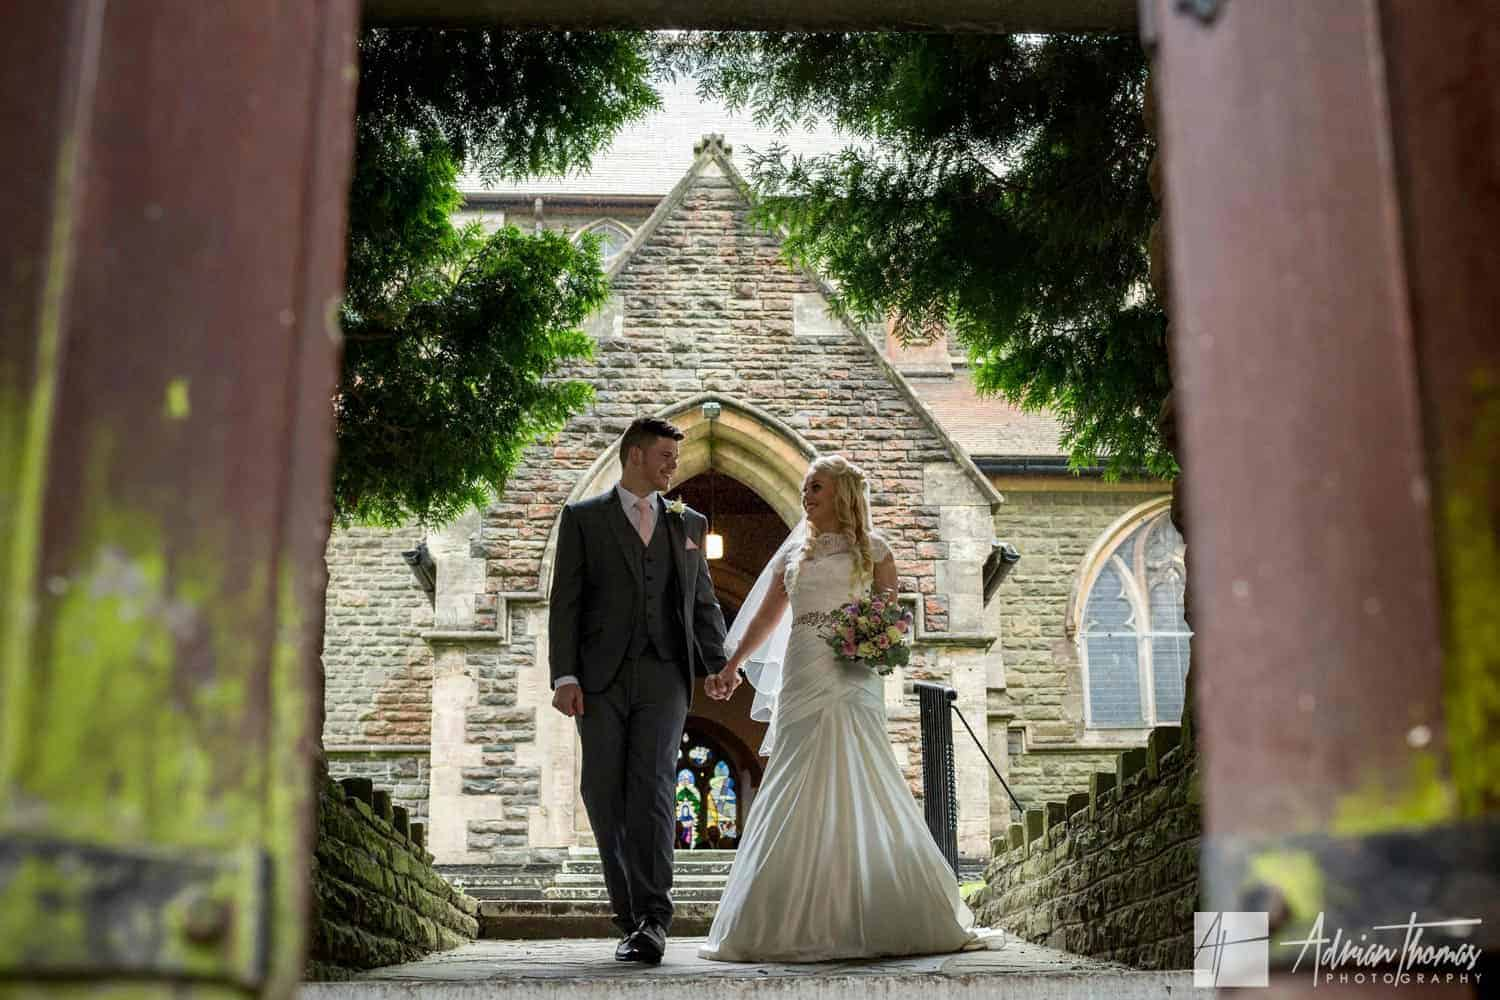 Bride and groom leaving their St Martin's Church Caerphilly wedding.